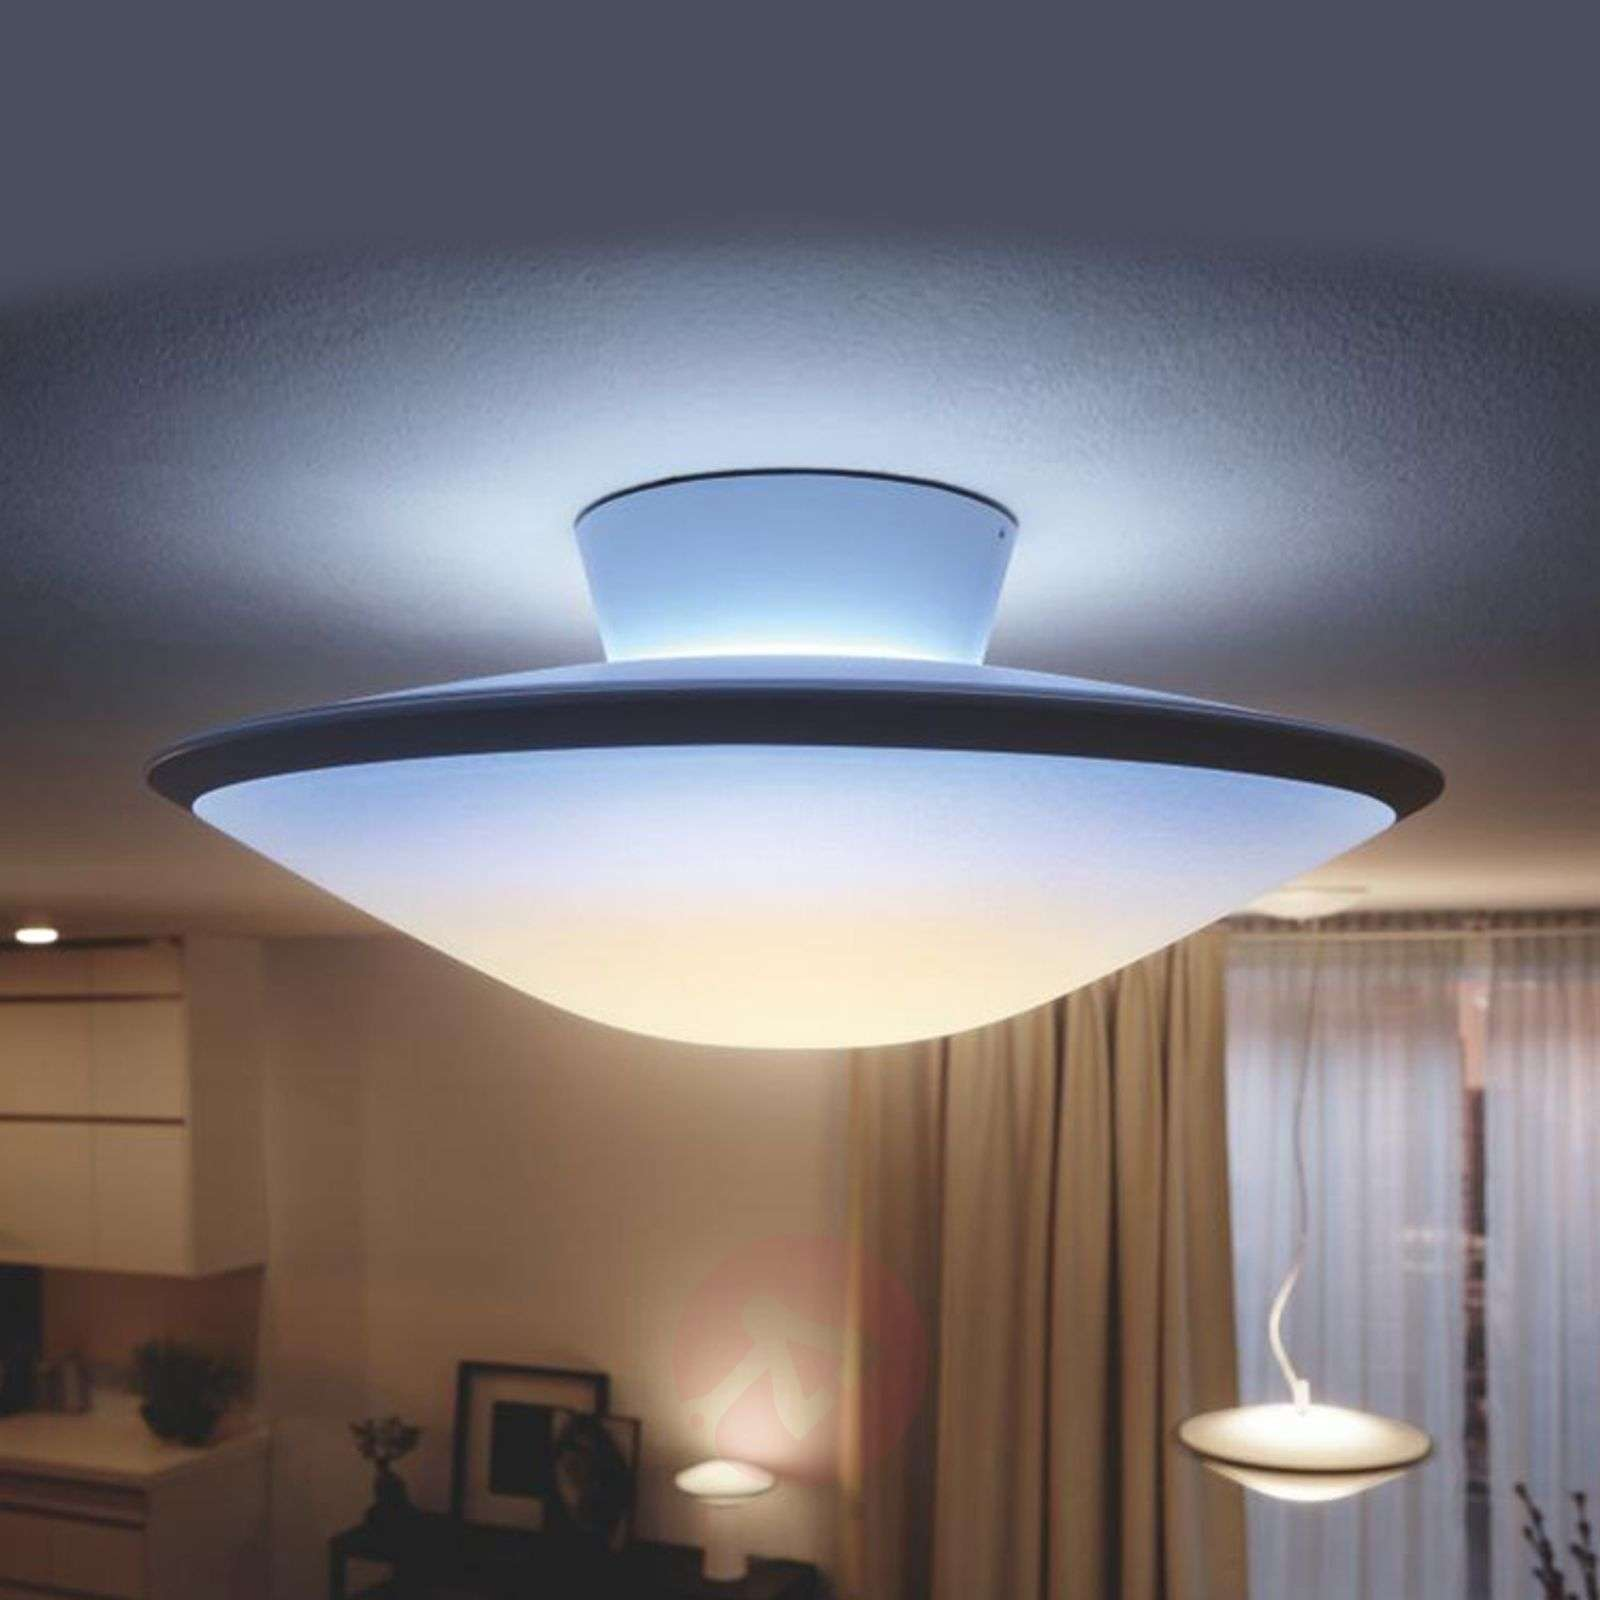 Plafoniere Esterno Philips : Acquista plafoniera philips hue phoenix con led lampade.it